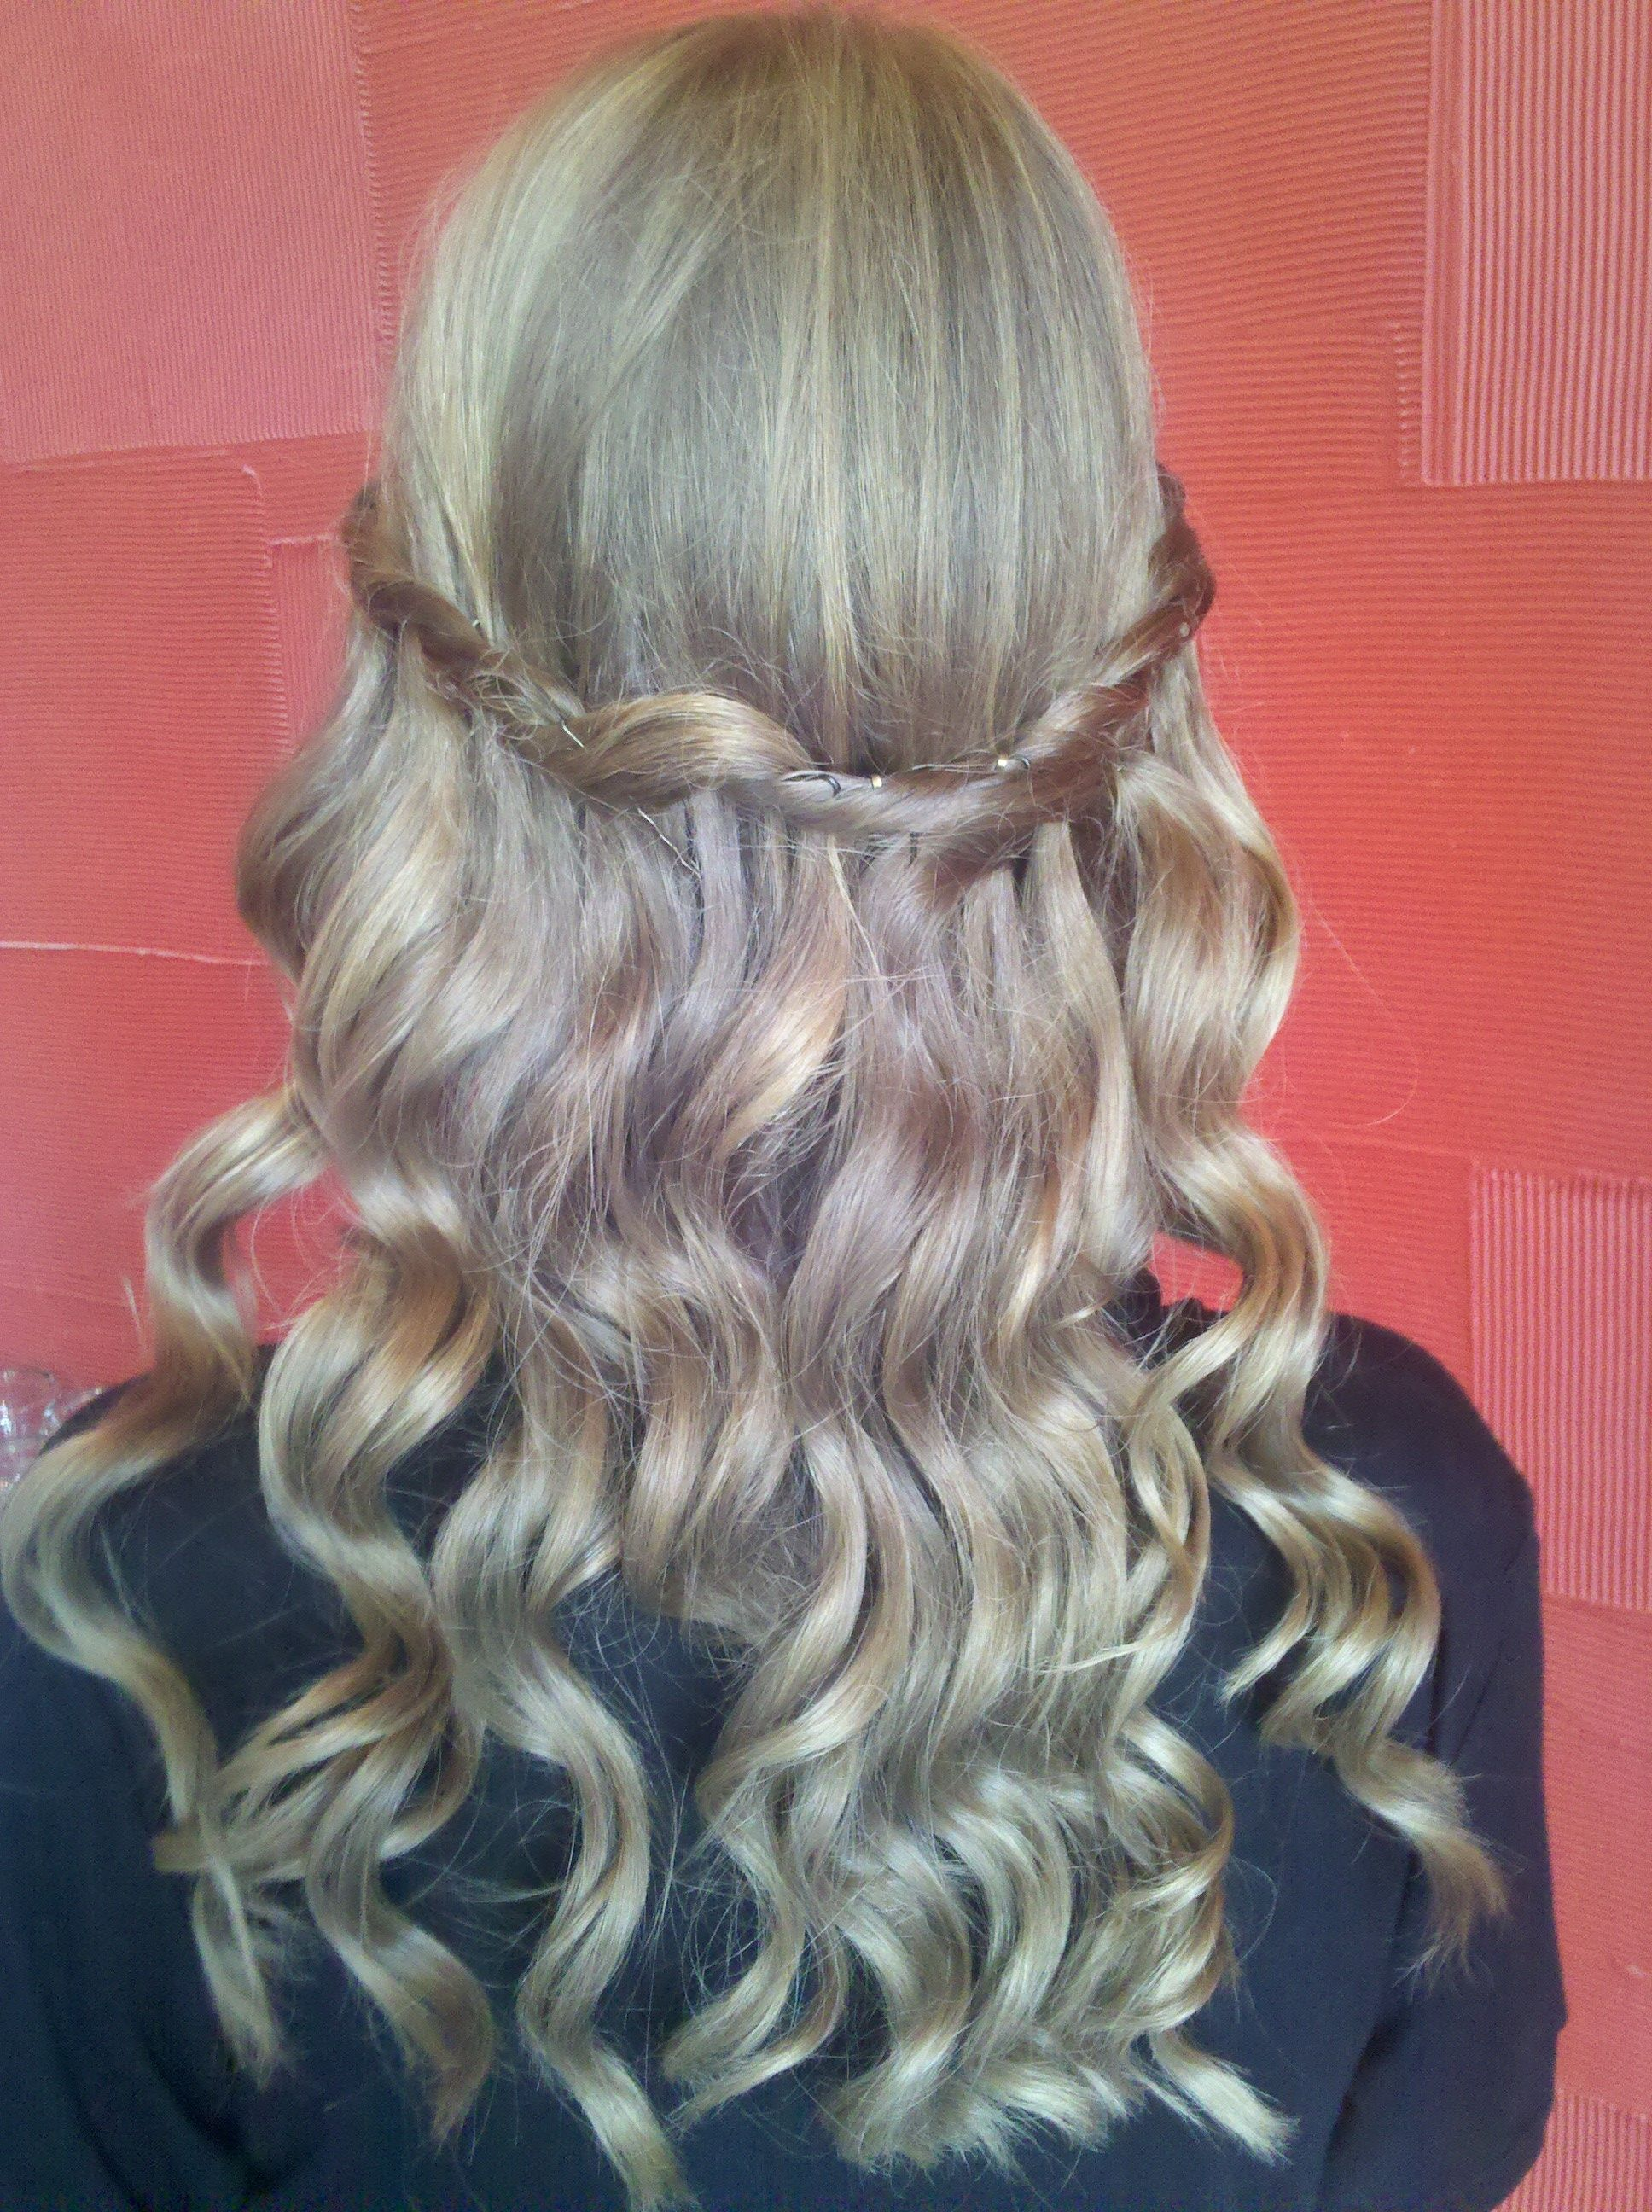 Curls with a braid done by one of our stylists, Jafra